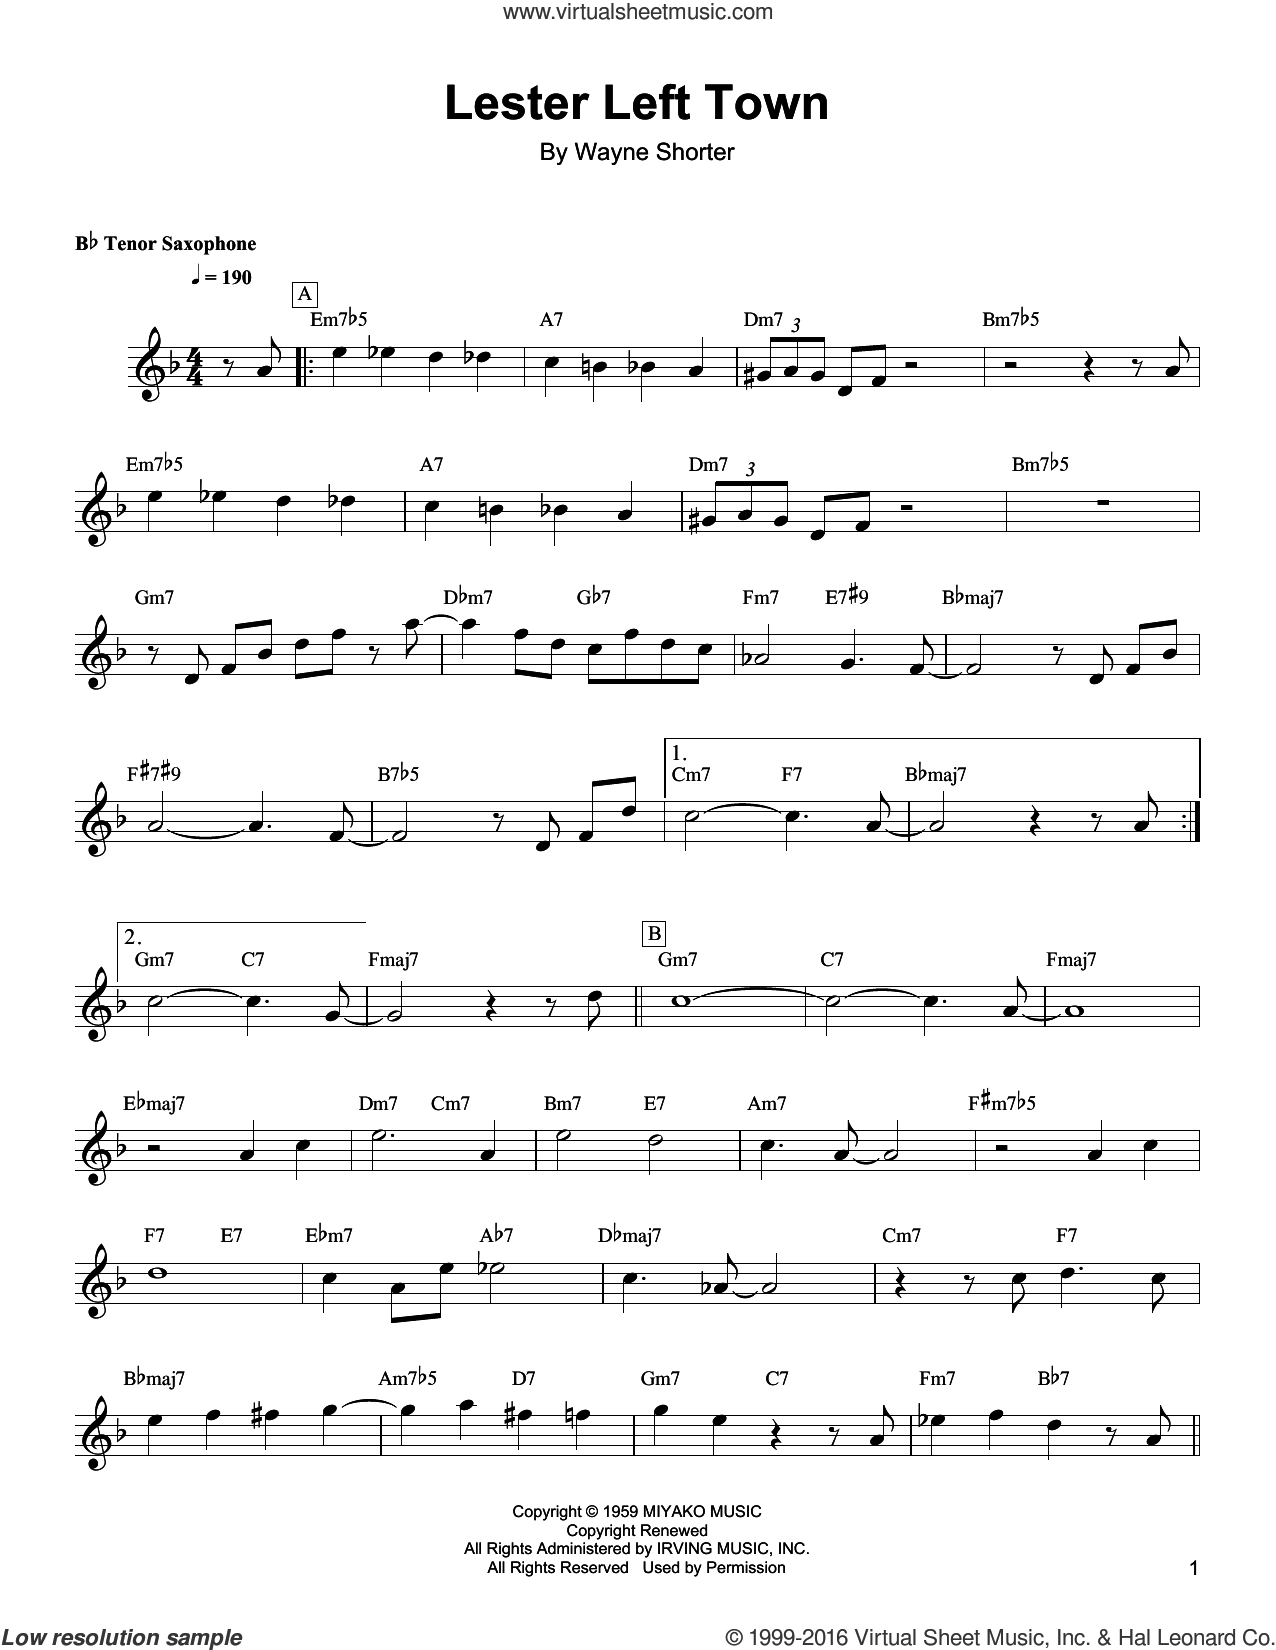 Lester Left Town sheet music for tenor saxophone solo (transcription) by Wayne Shorter. Score Image Preview.